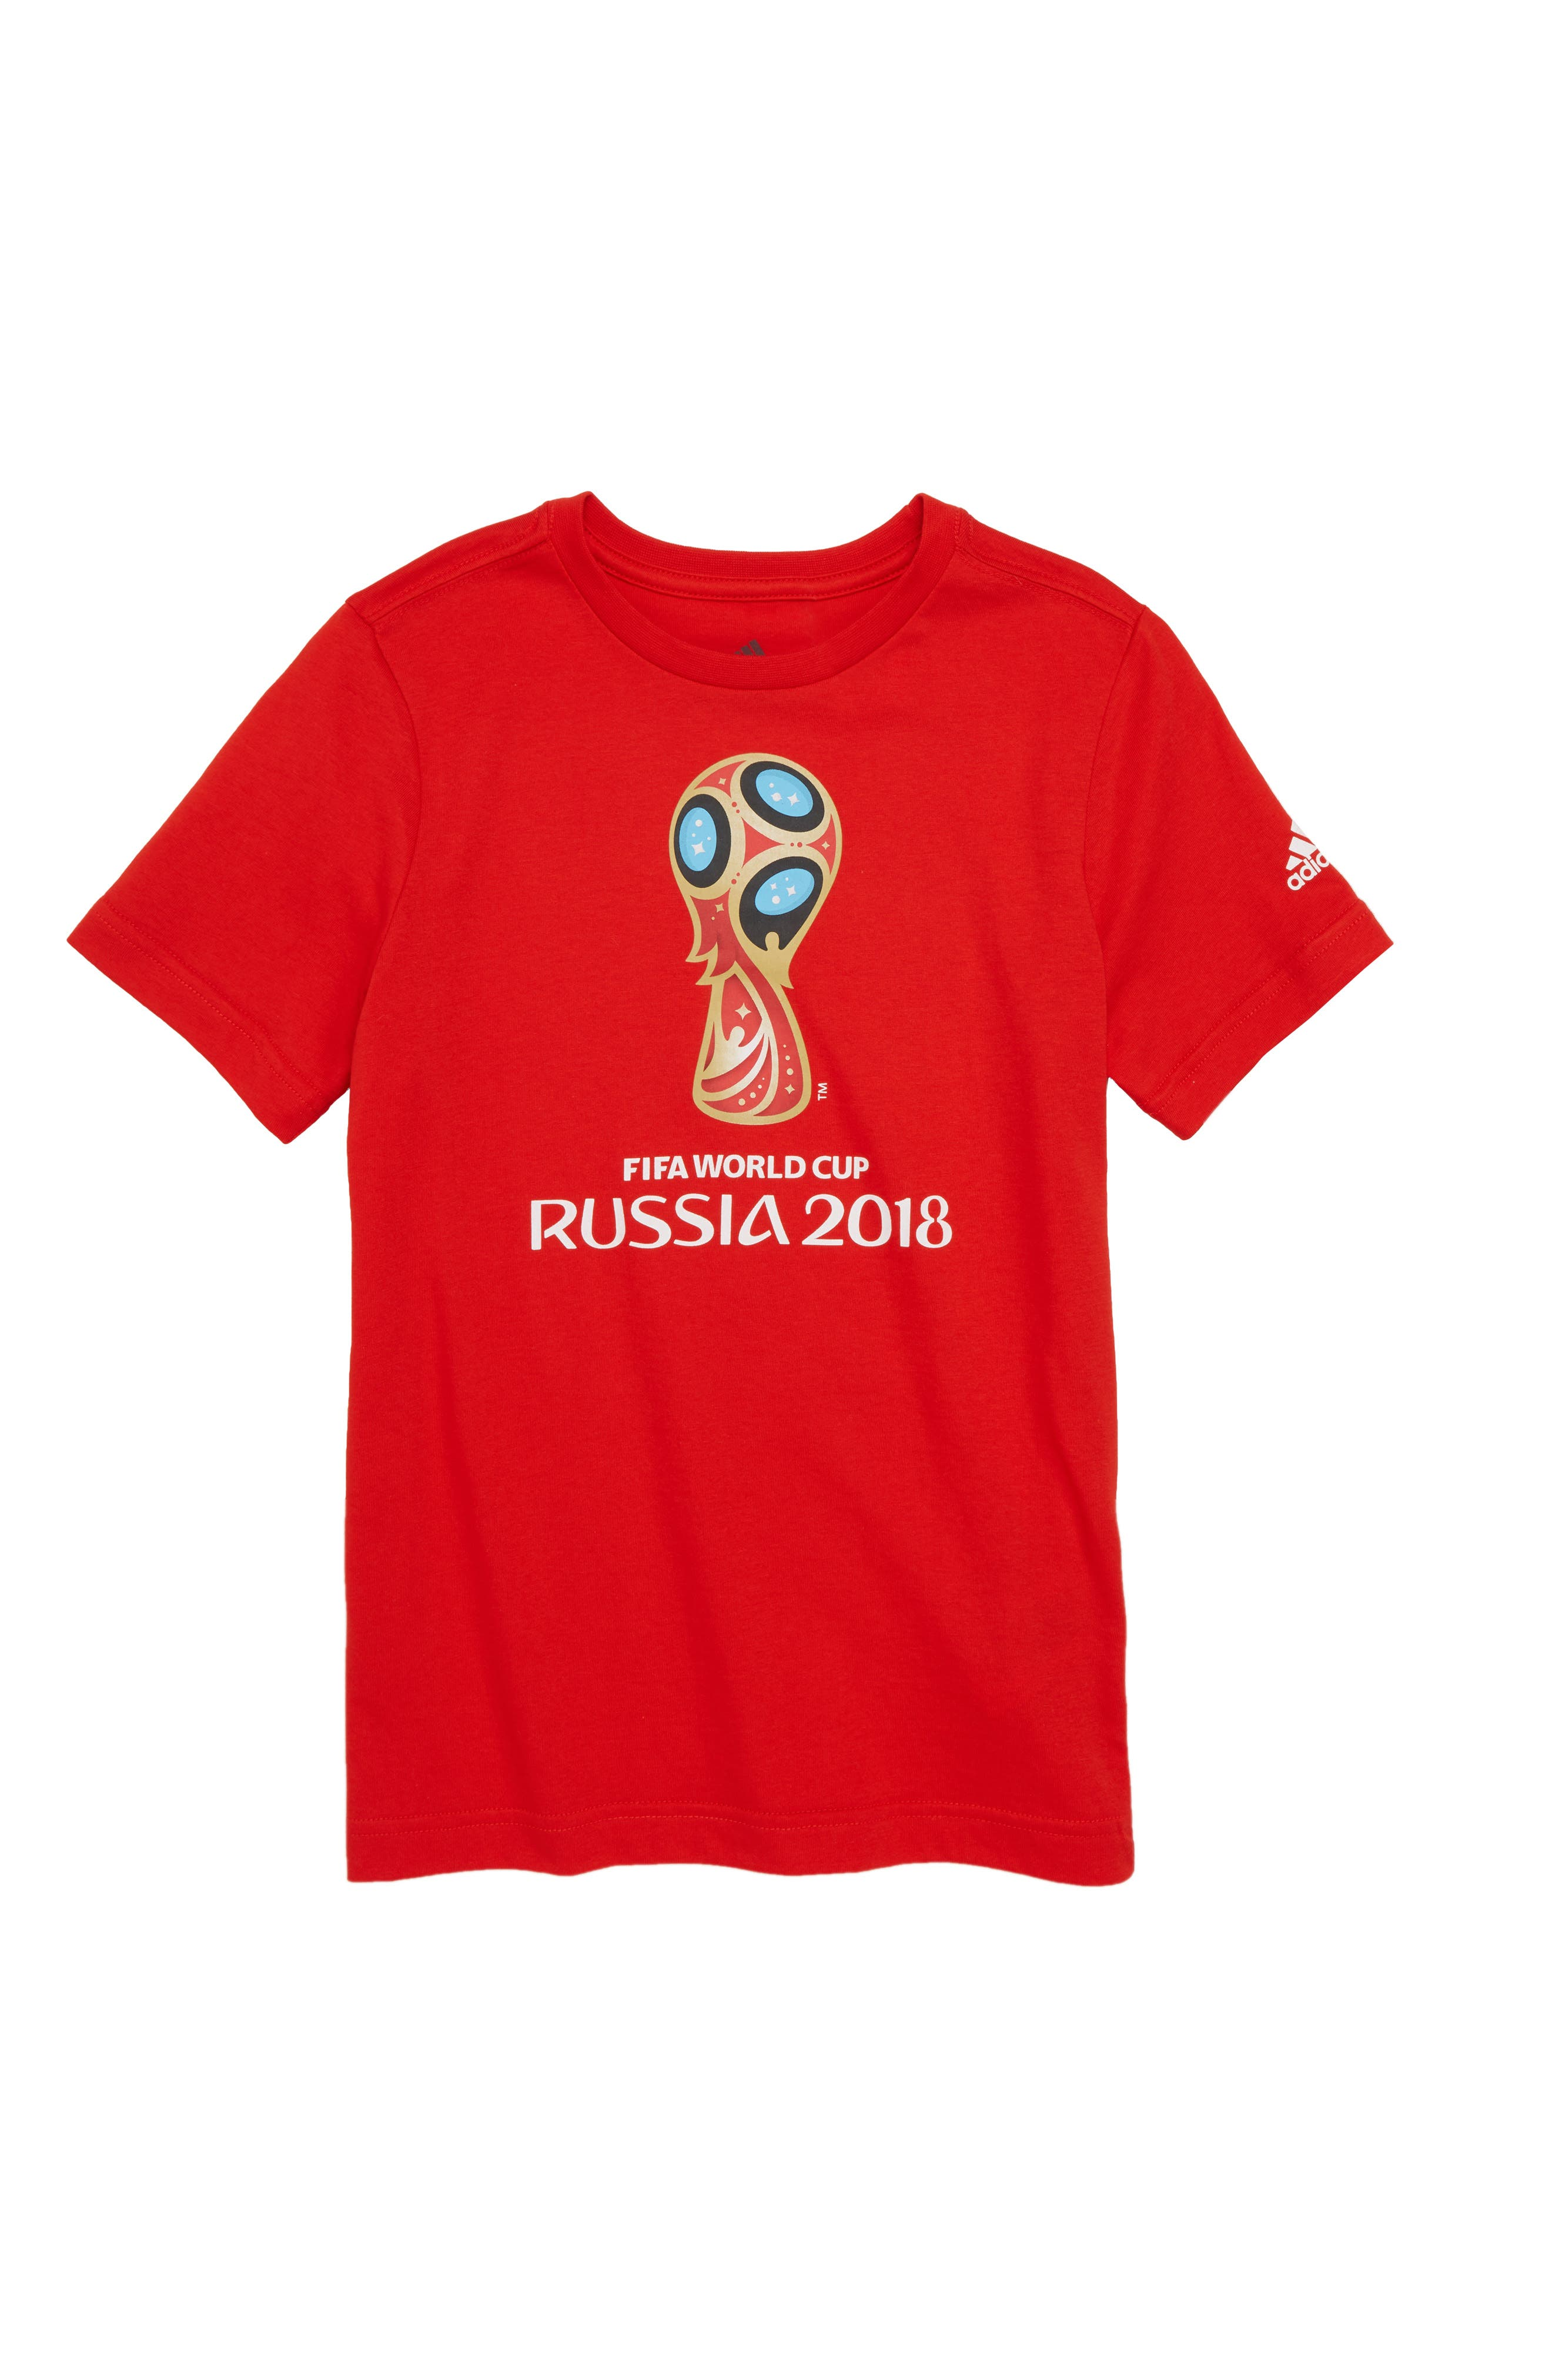 2018 FIFA World Cup Russia Soccer T-Shirt,                         Main,                         color,